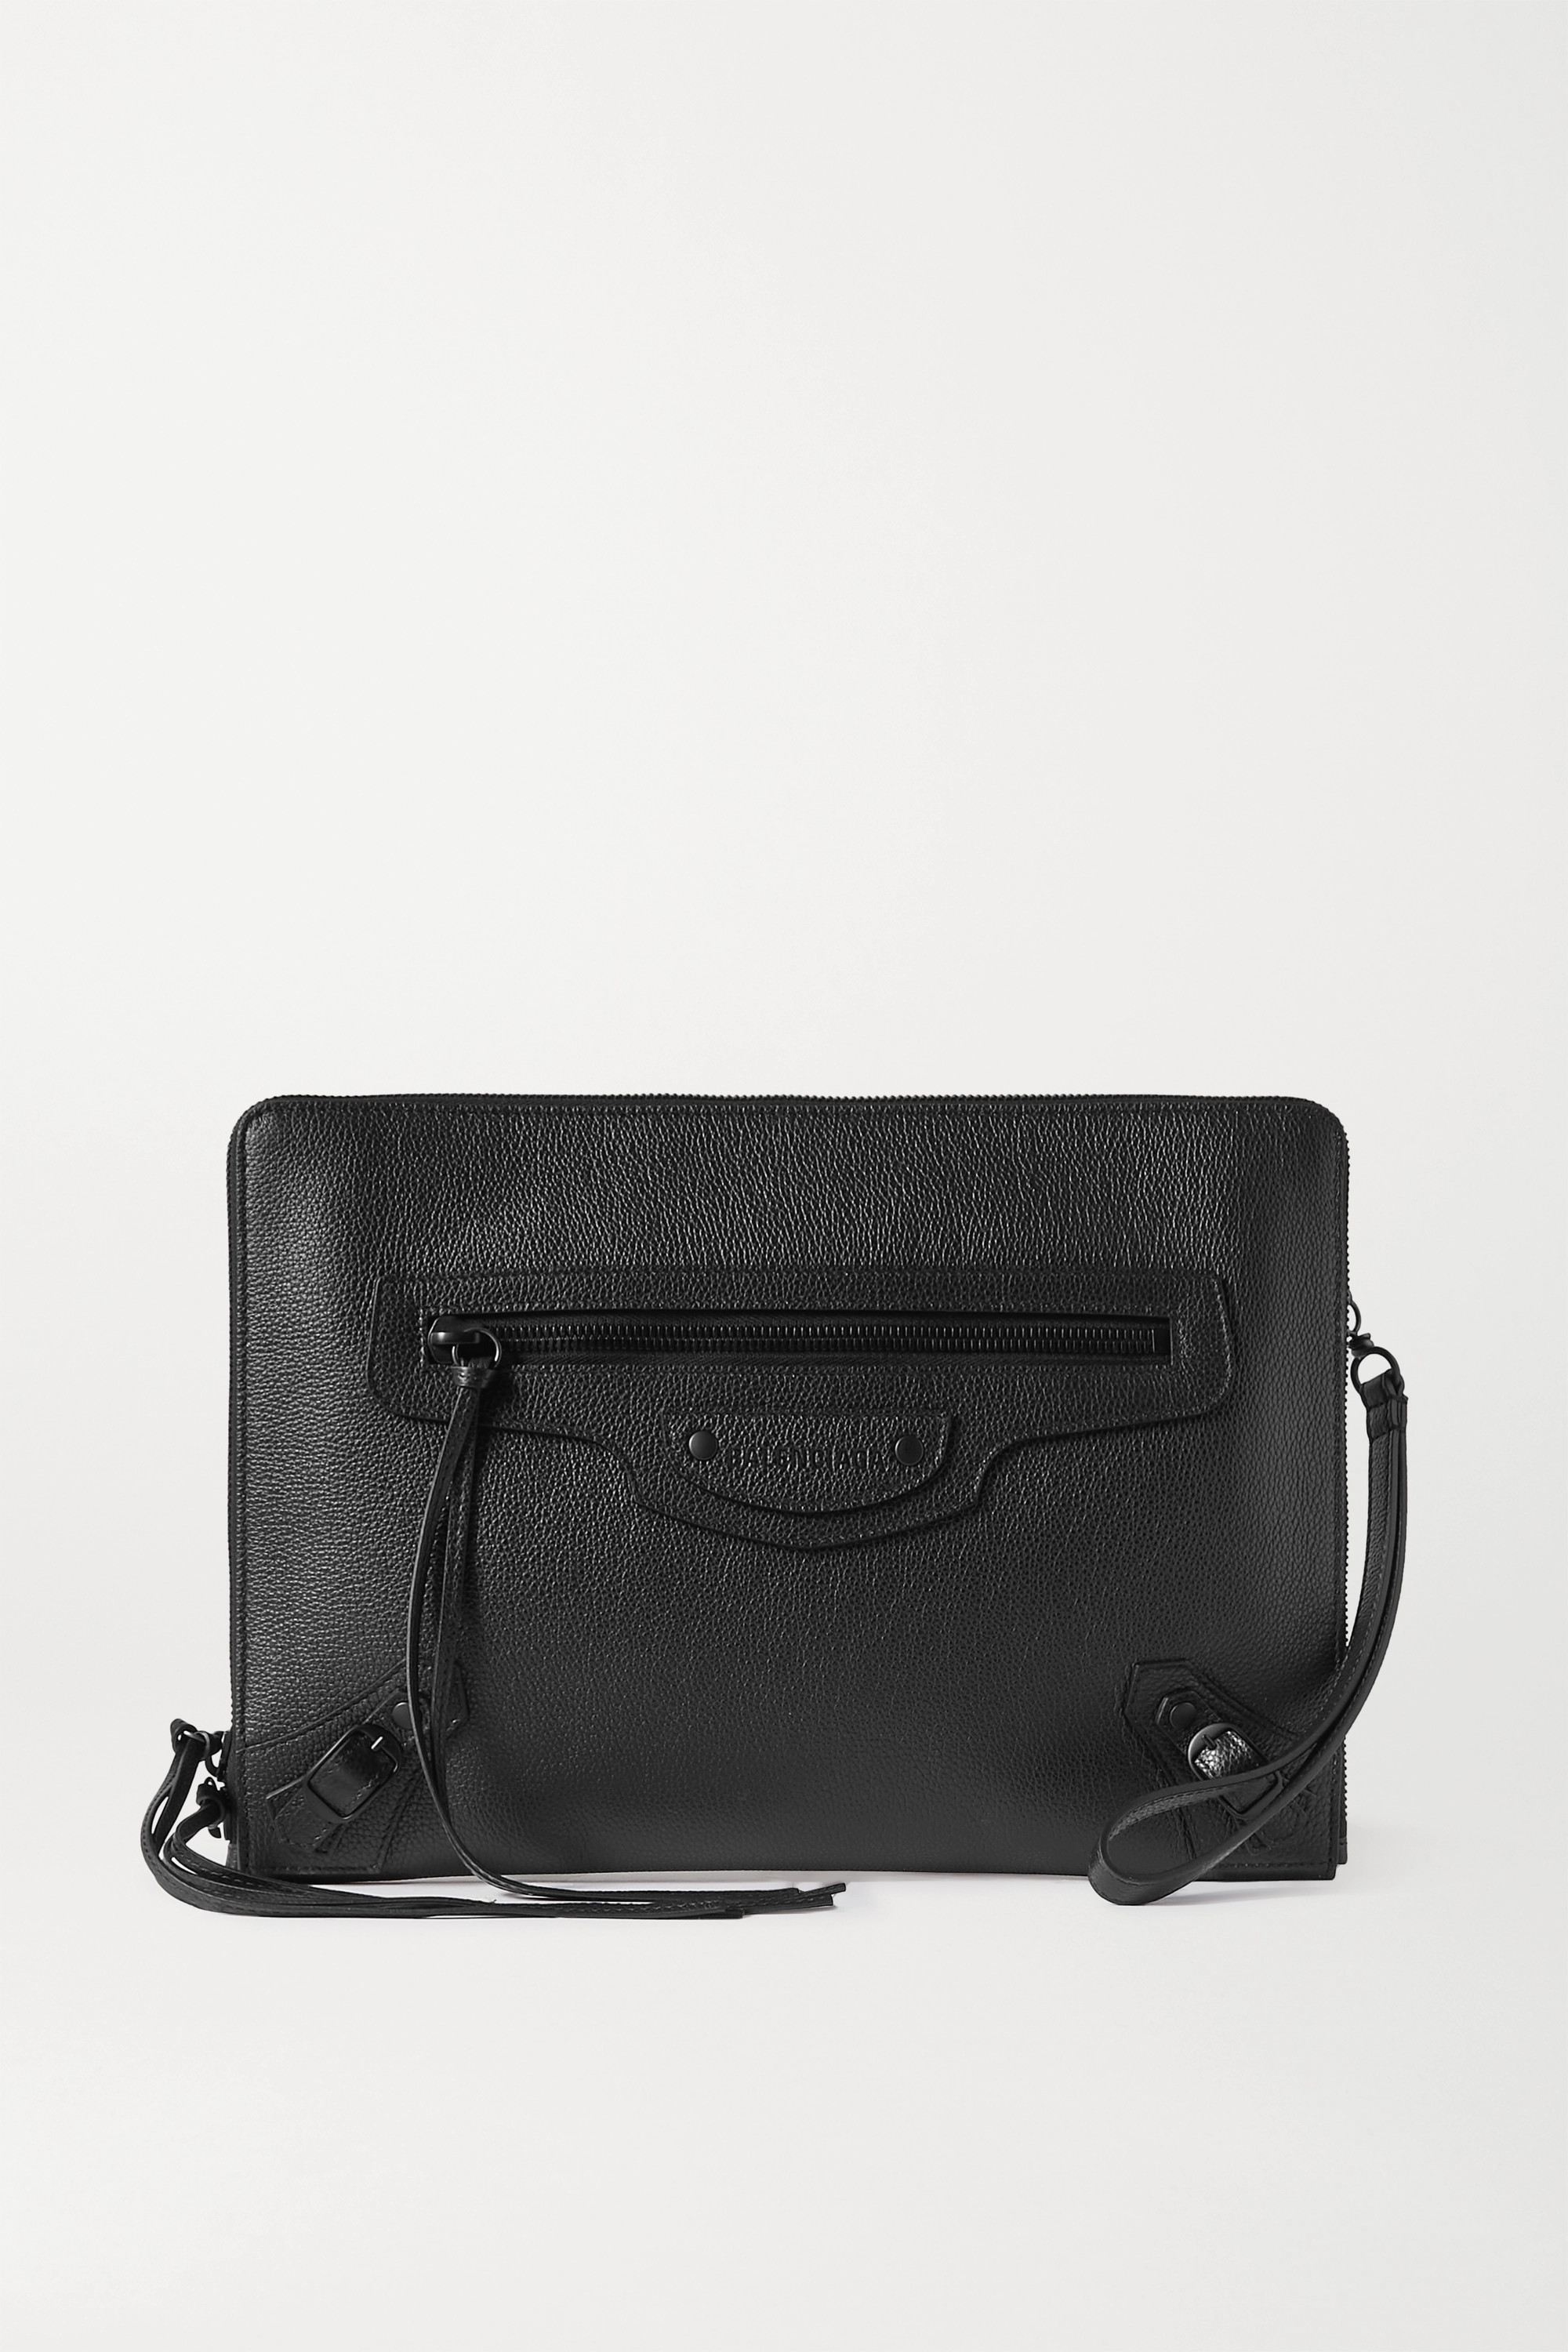 Balenciaga Neo Classic City large textured-leather pouch